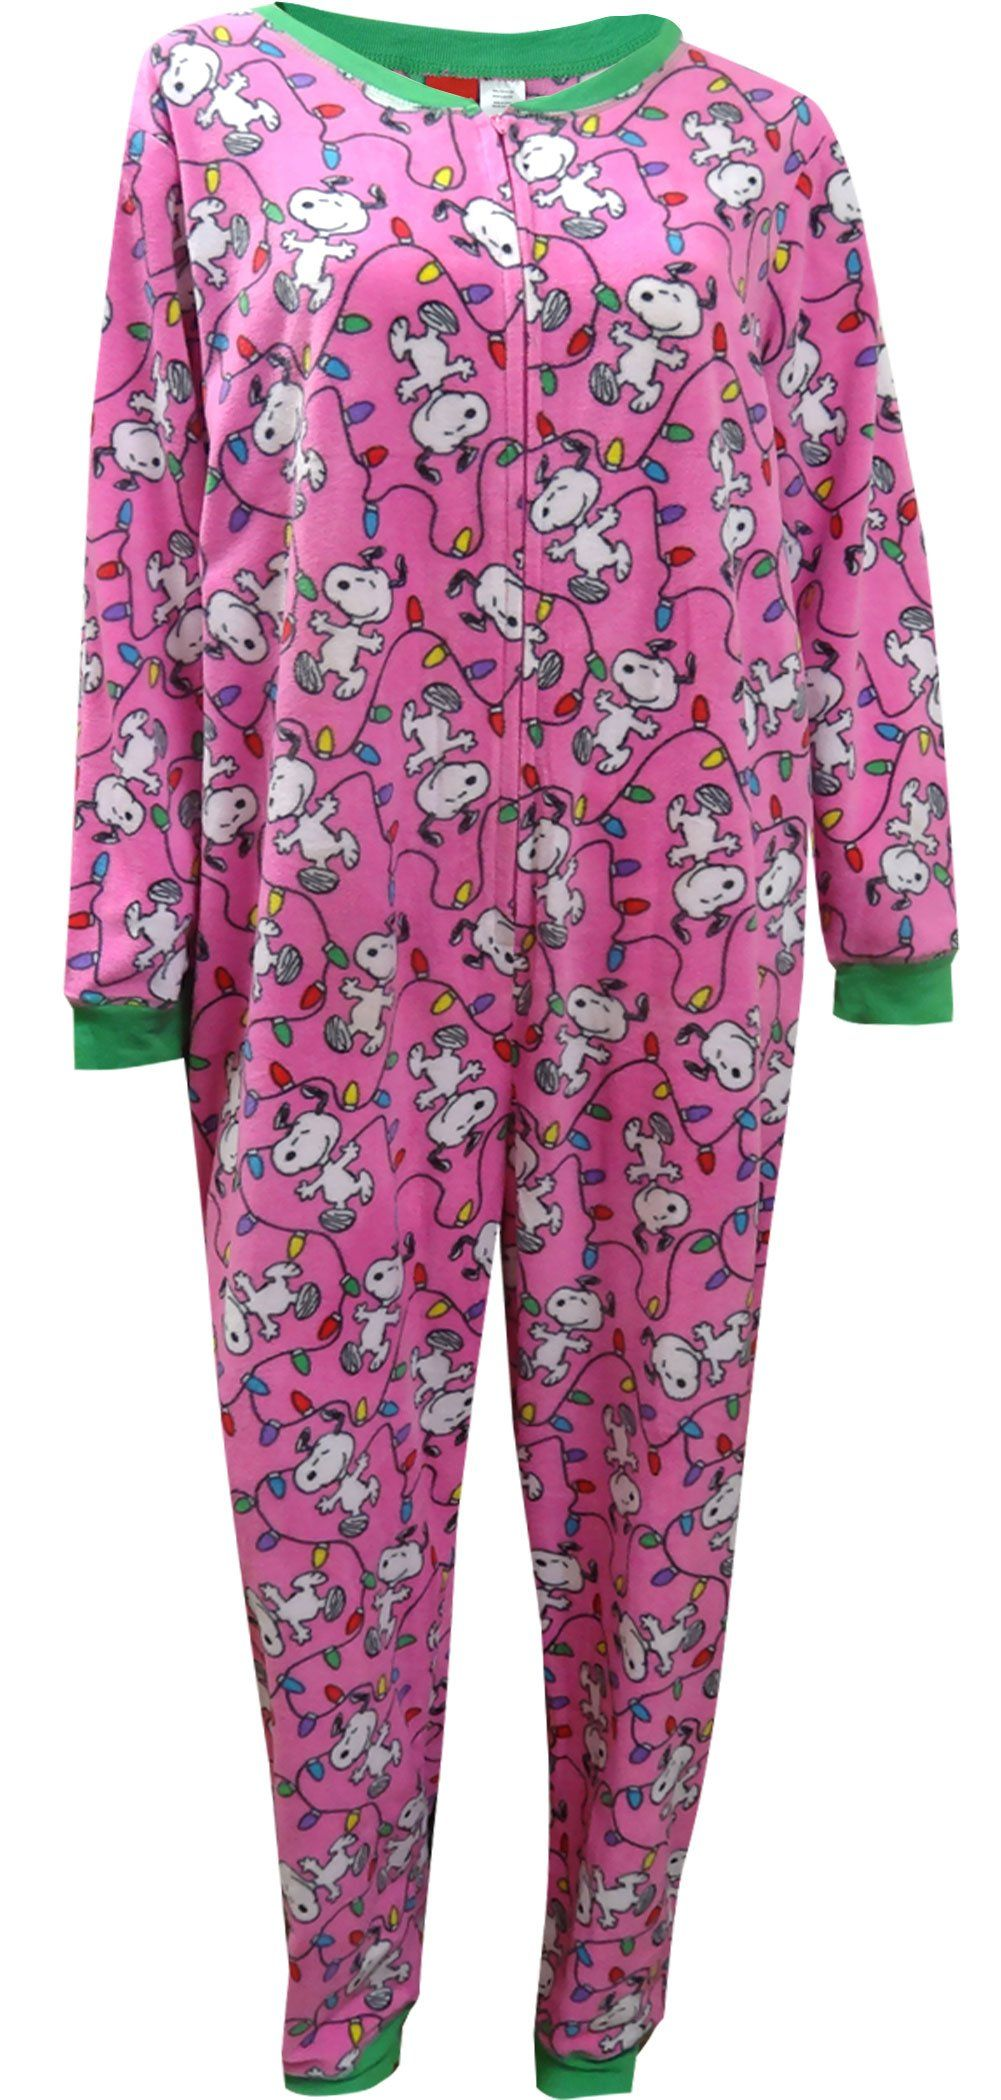 8e589ad2ff Peanuts Snoopy Christmas Plus Size Onesie Pajama for women (1X) -- Awesome  products selected by Anna Churchill